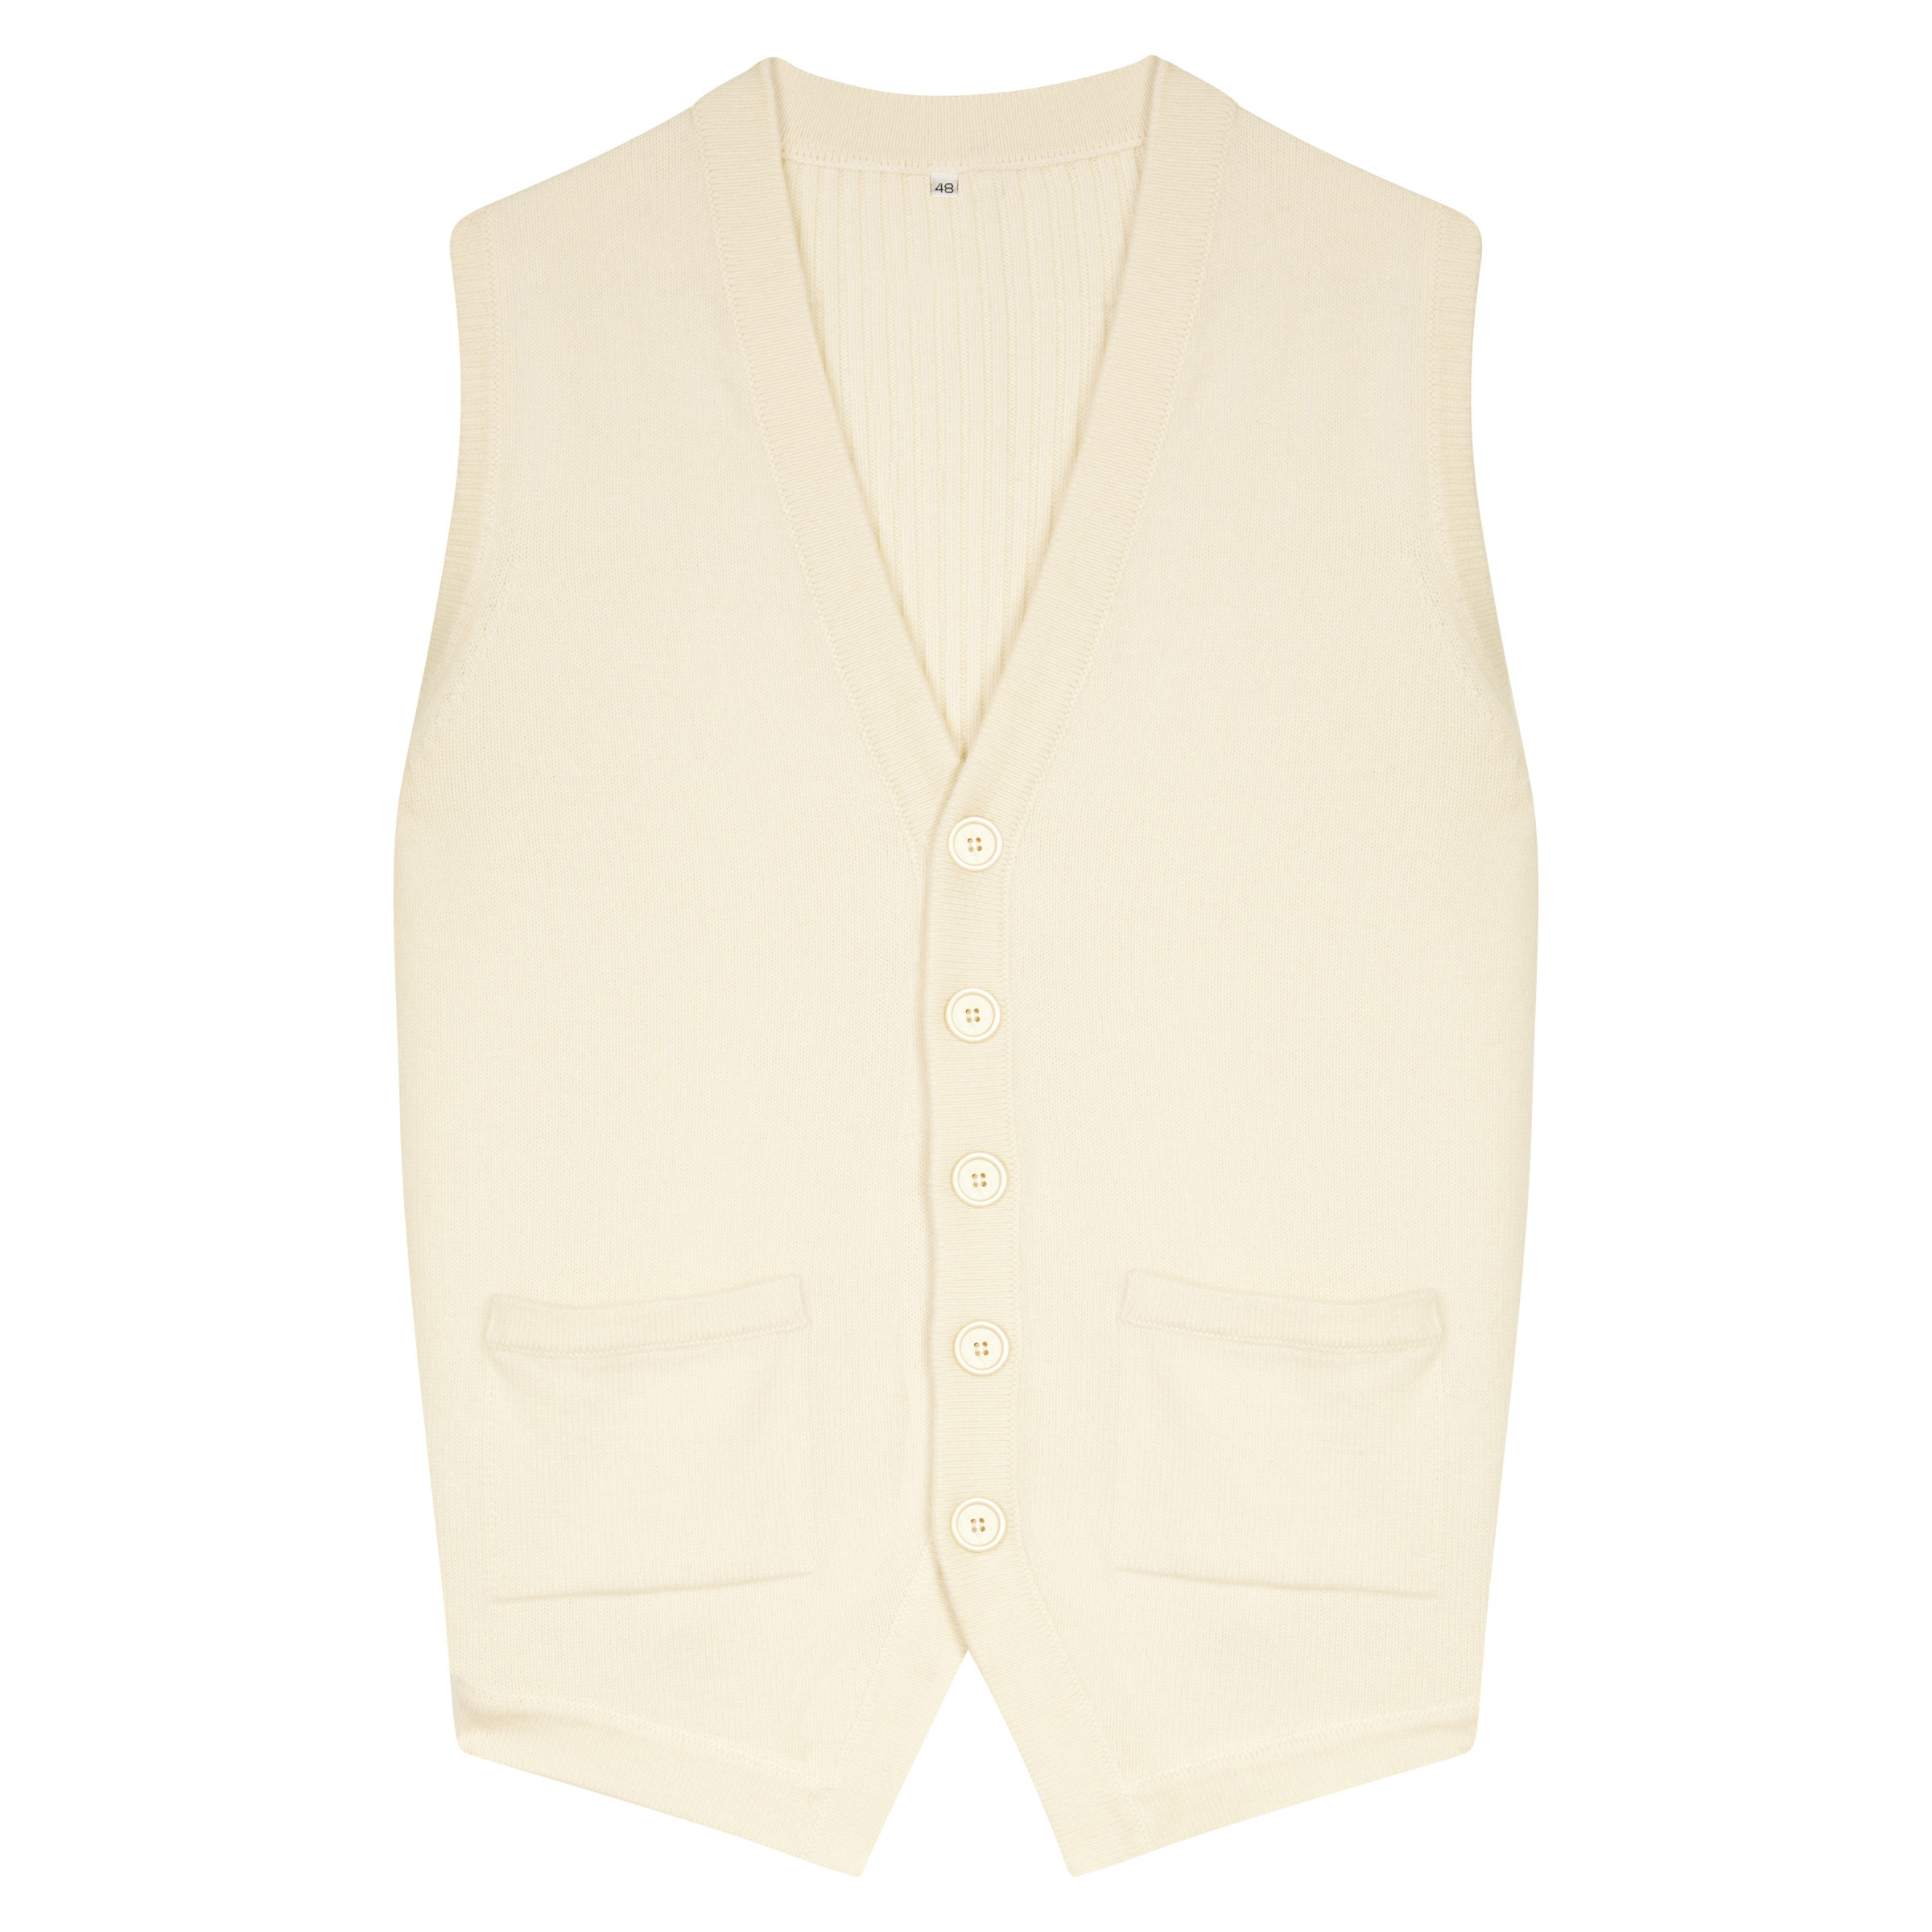 Cream Wool and Cashmere Knitted Waistcoat